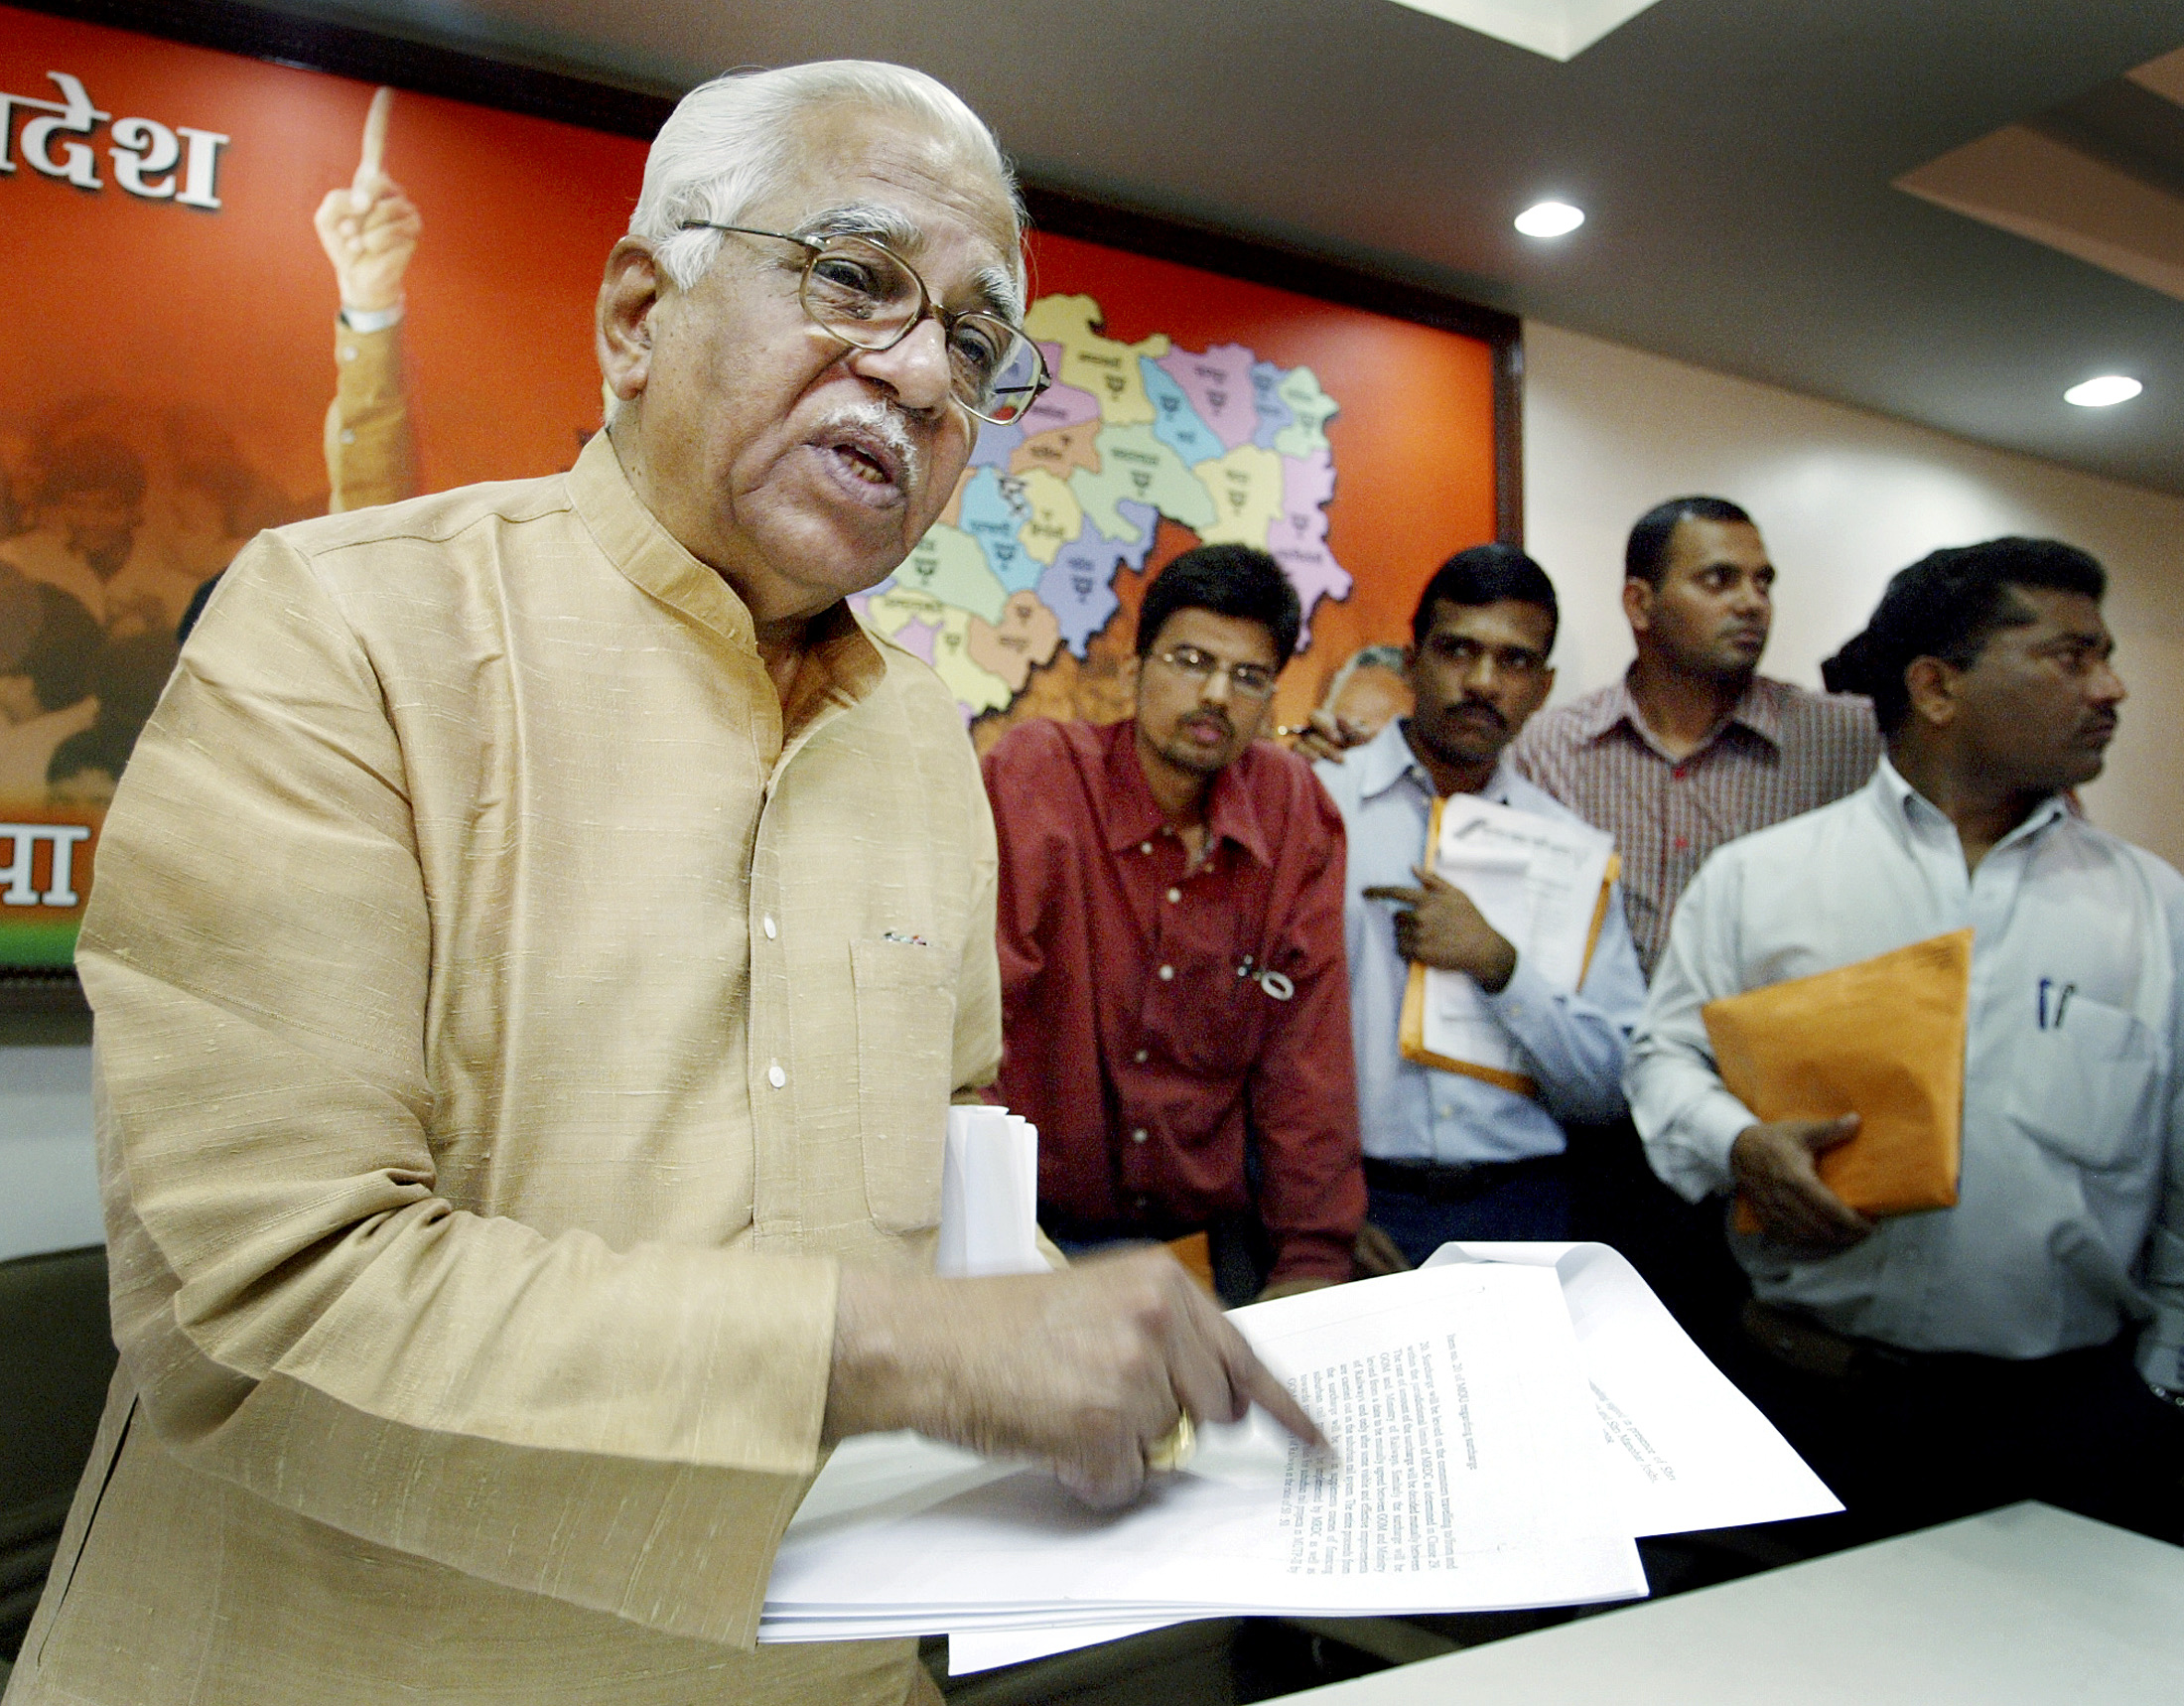 India's Petroleum Minister Ram Naik speaks during a media gathering in Bombay September 16, 2003. Naik said on Tuesday that state-run Indian Oil Corporation, Oil and Natural Gas Corporation and Gas Authority of India Limited will not be privatised. The minister addressed the news conference hours after a ruling by the Supreme Court asking the government to seek parliamentary approval for selling stakes in two state-run oil refineries, which he said was a historic decision. REUTERS/Sherwin Crasto SC/TW - RTR33GN